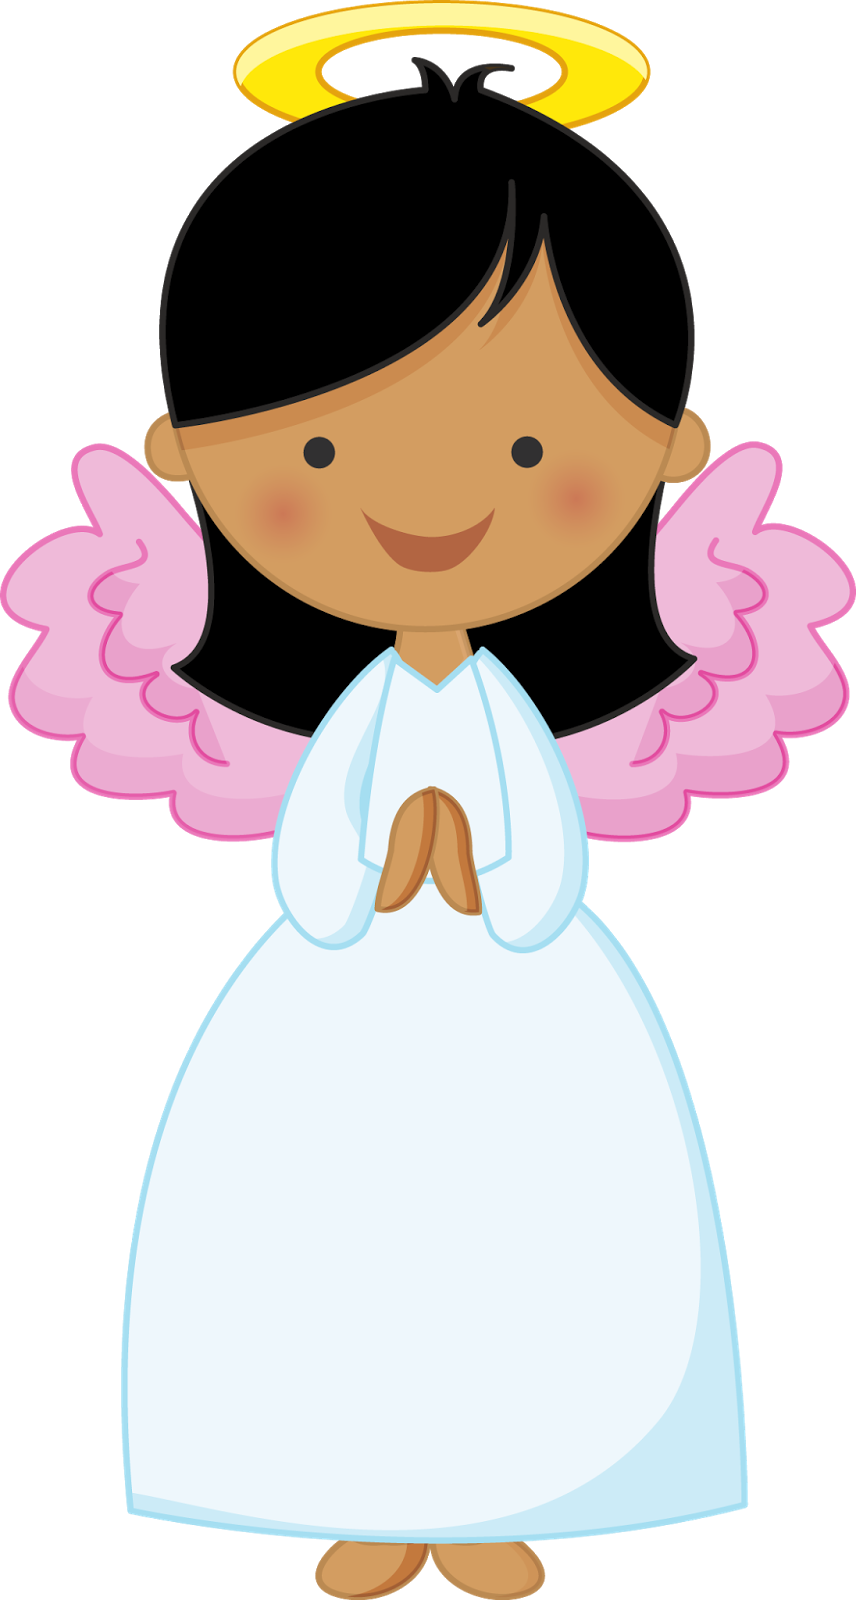 Ibo cso dqqabh png. Funeral clipart first communion